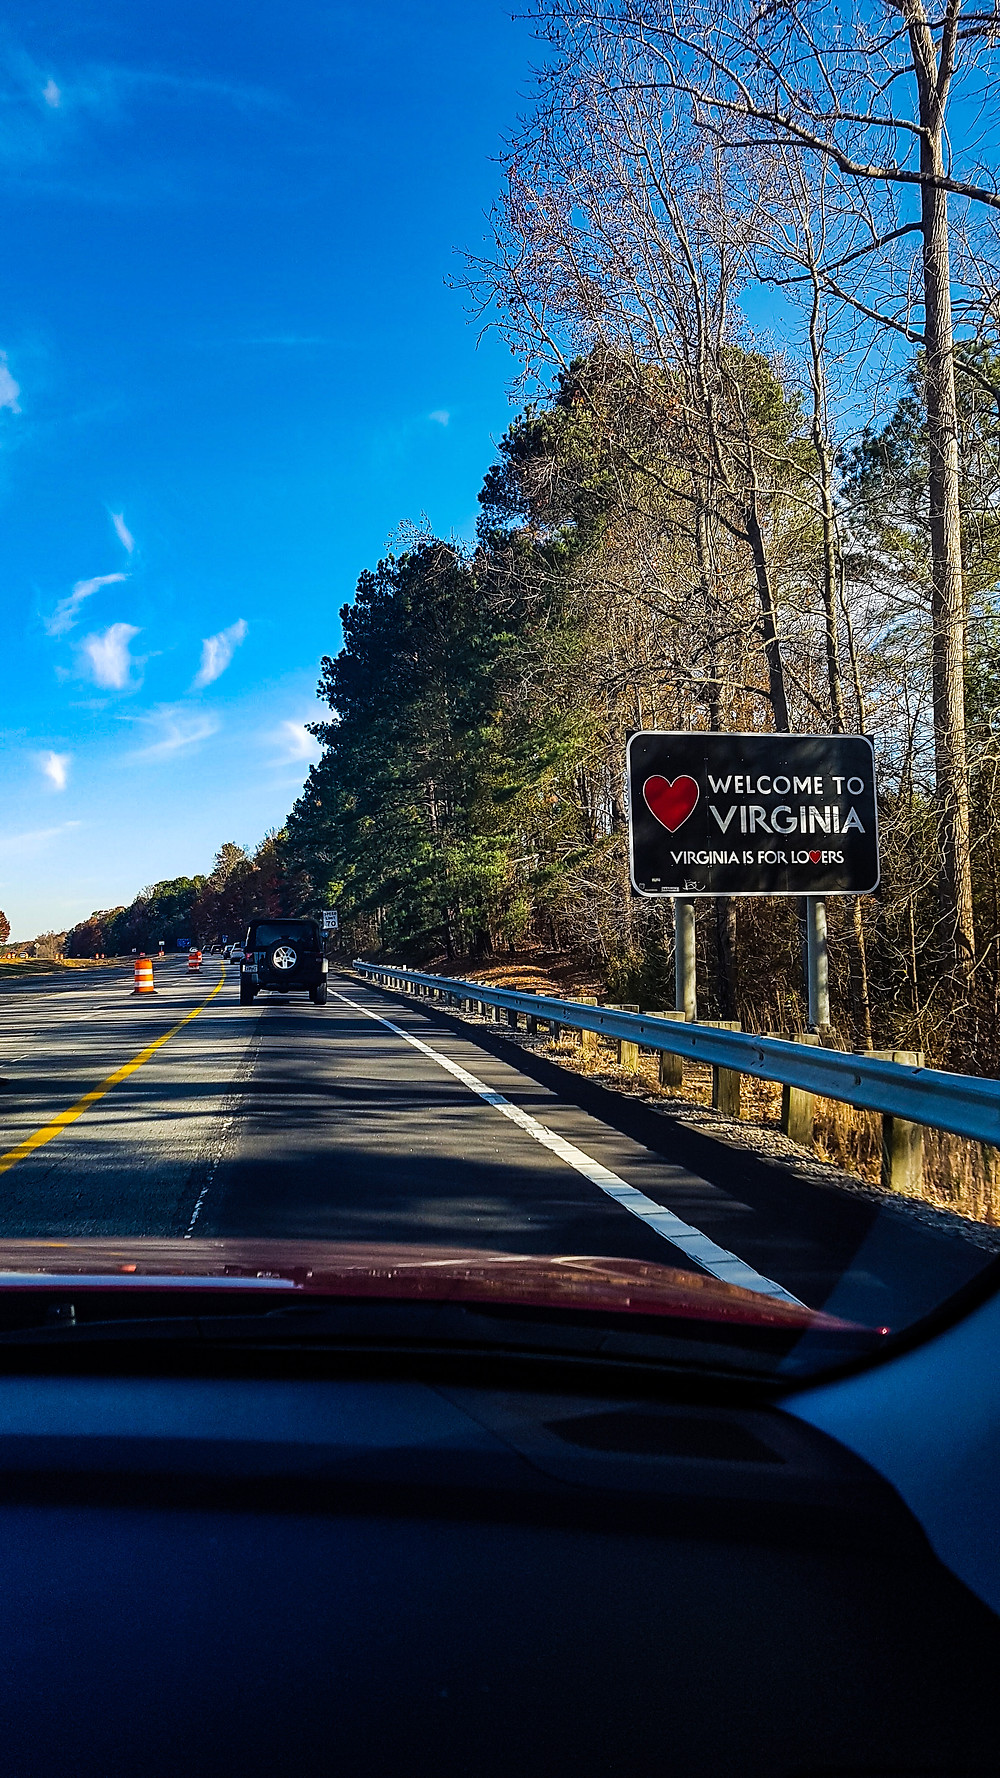 virginia united states stany zjednoczone ameryka road trip state crossing on the road